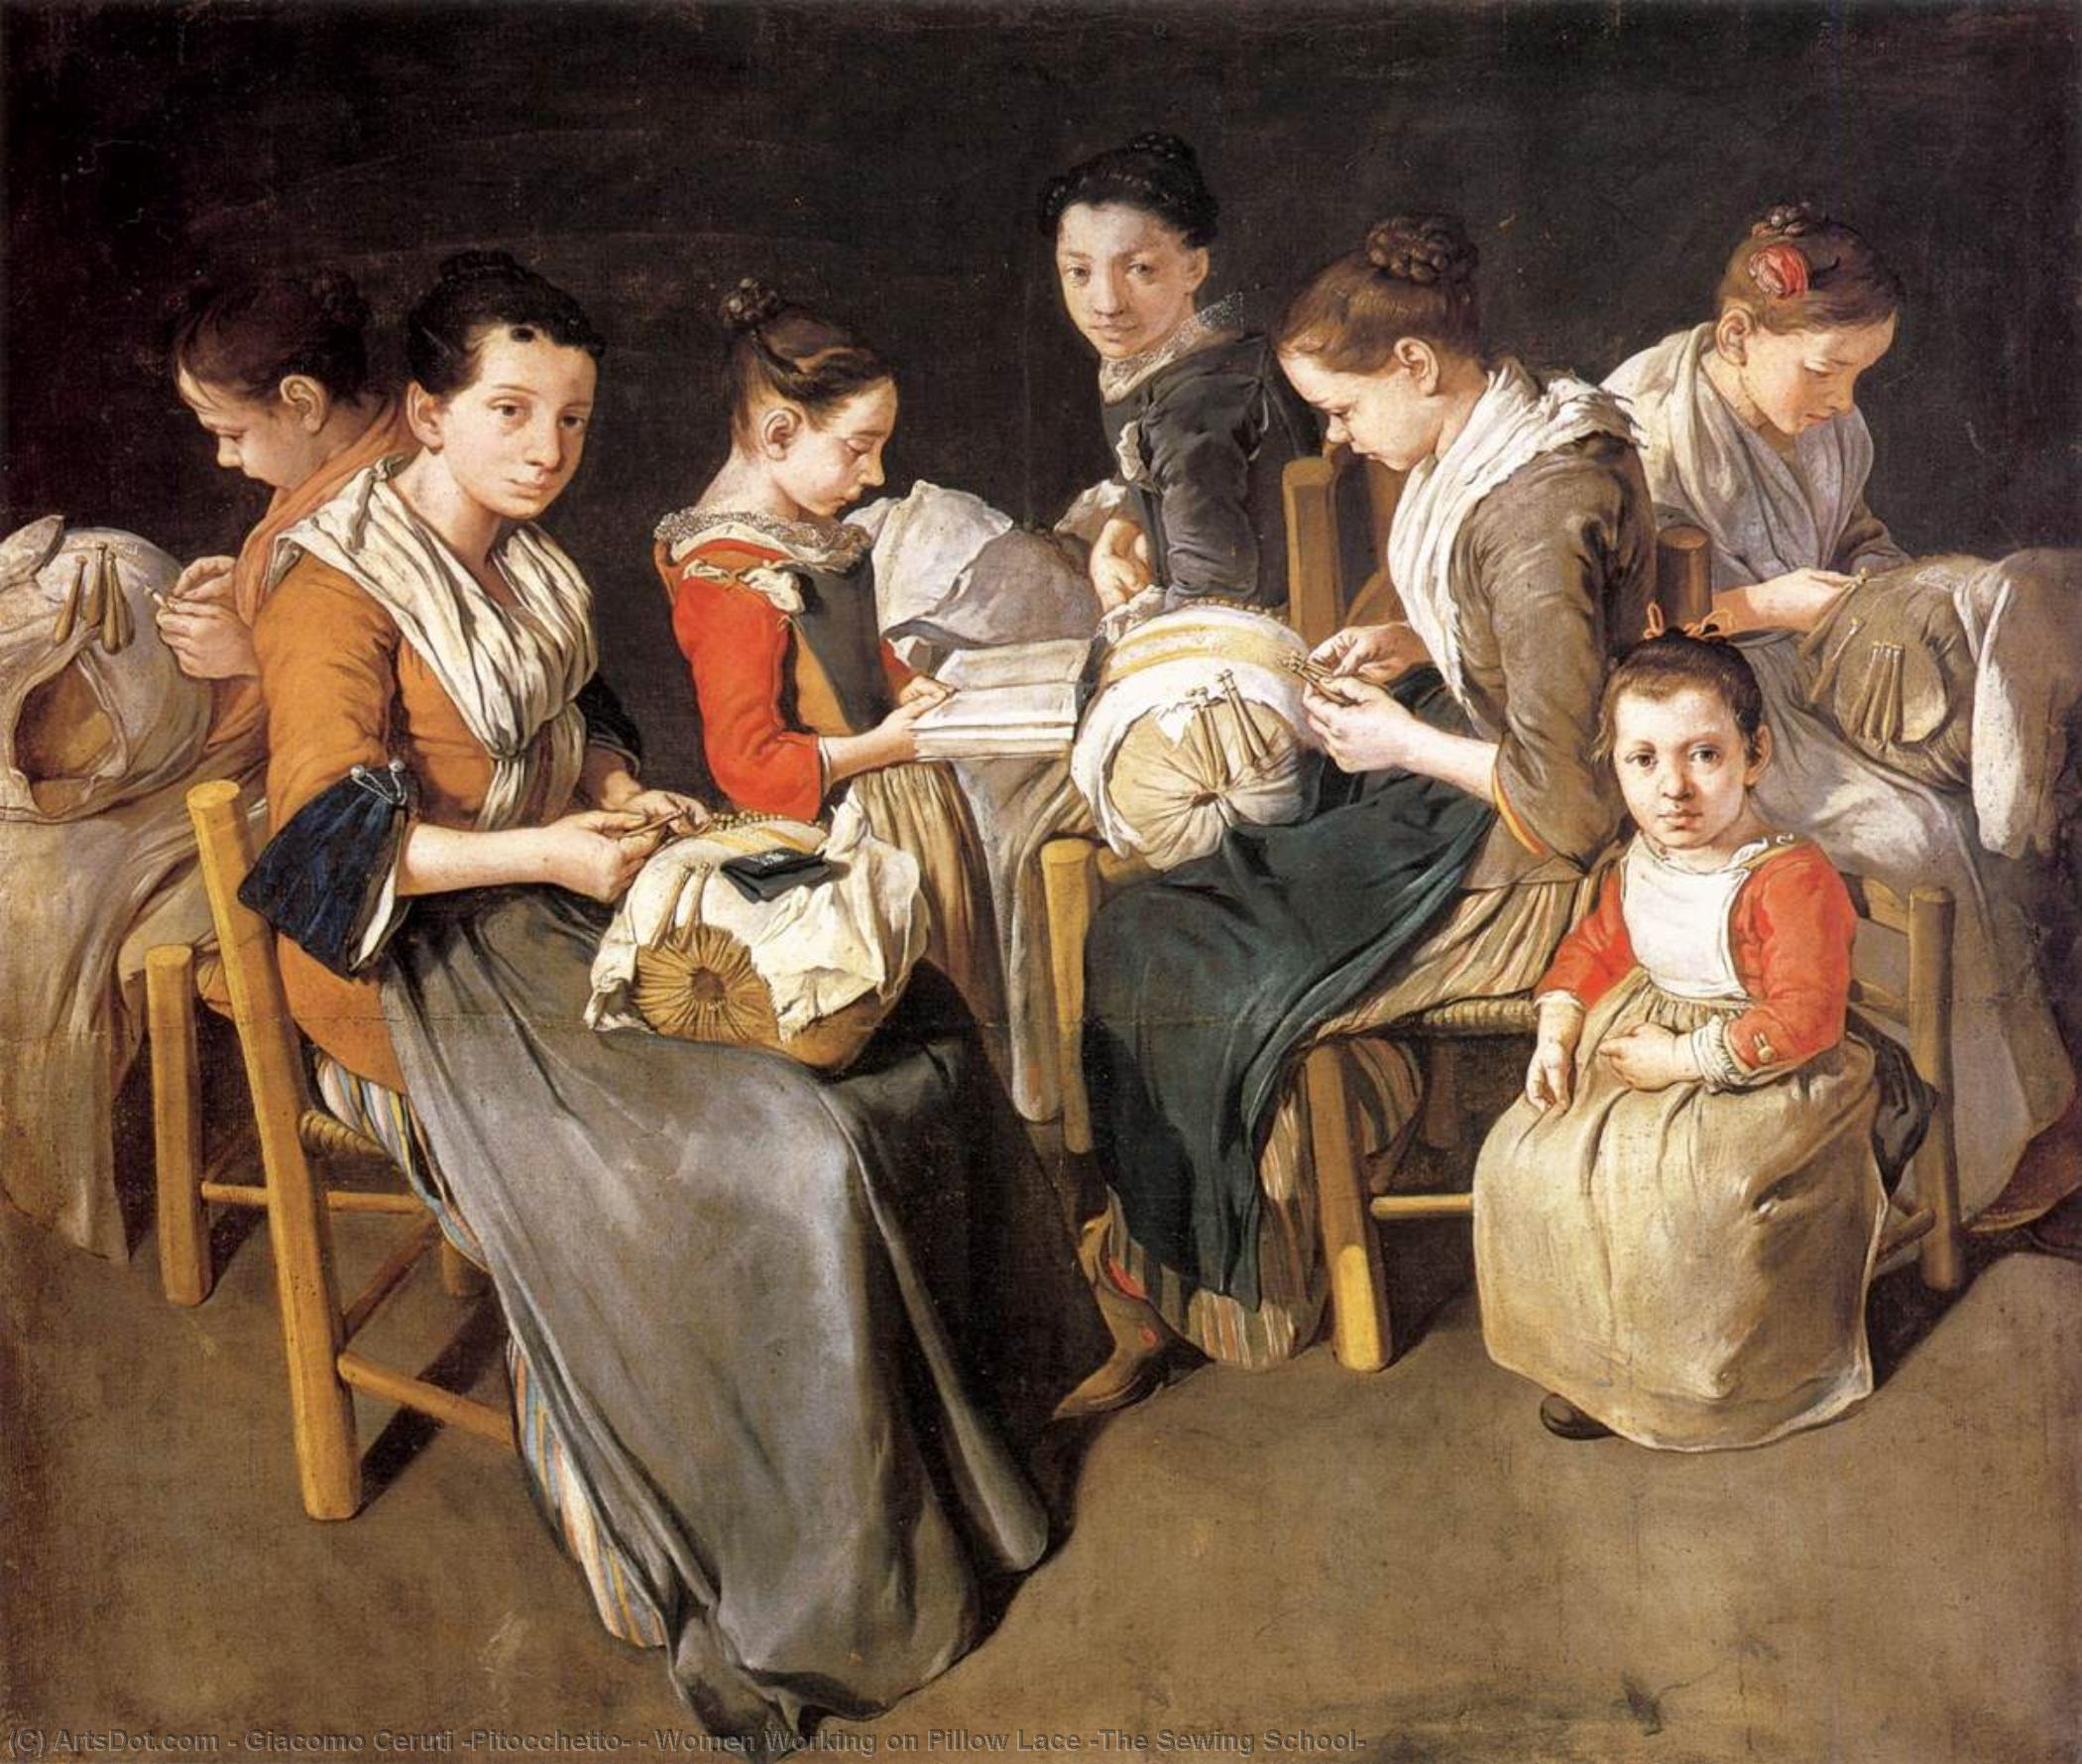 Women Working on Pillow Lace (The Sewing School), 1720 by Giacomo Ceruti (Pitocchetto) (1698-1767, Italy) | Oil Painting | ArtsDot.com